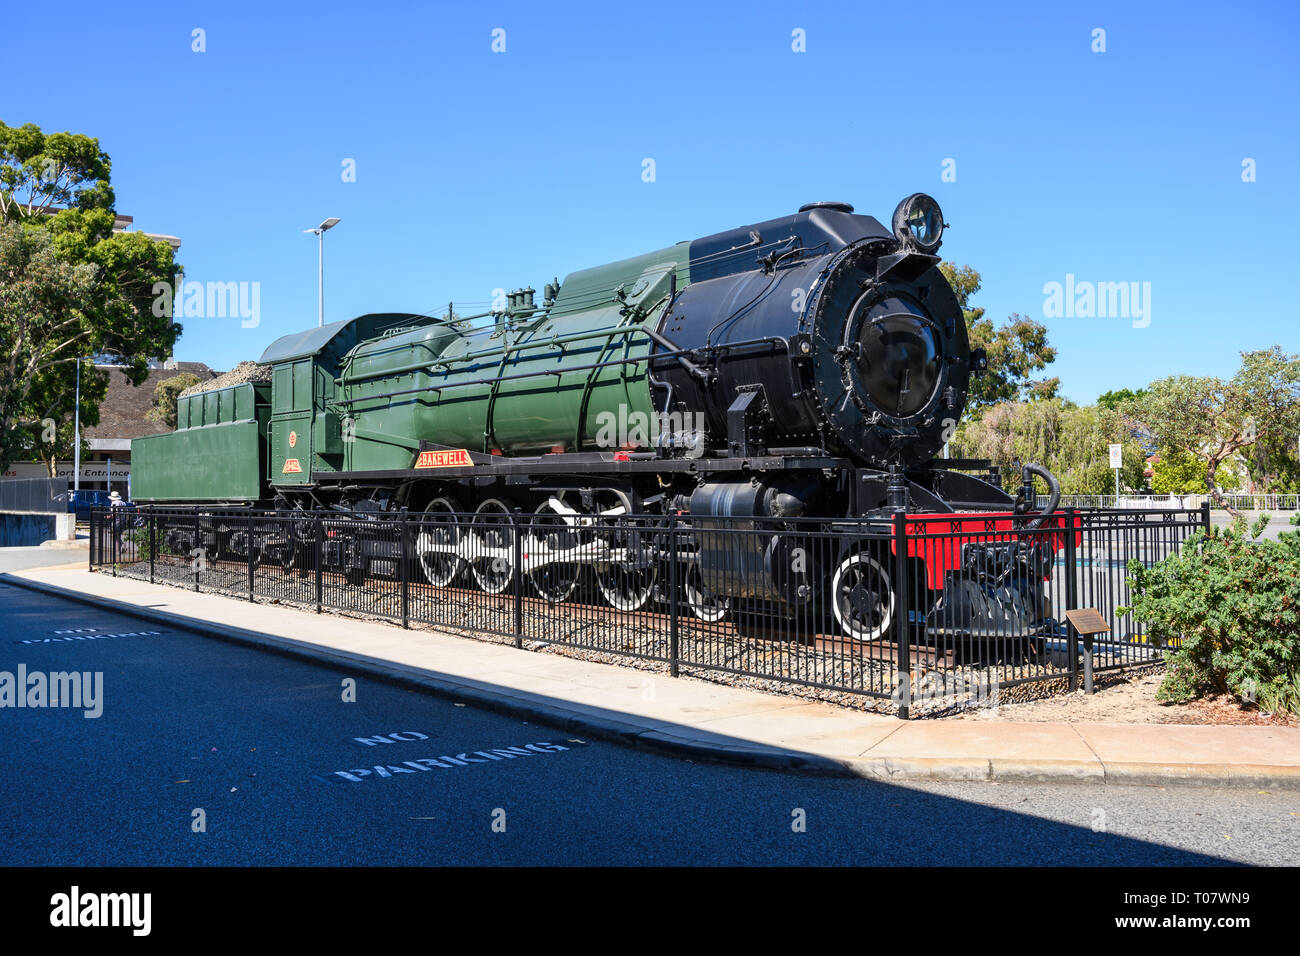 S542 Bakewell steam locomotive of WAGF S class is at East Perth Terminal, former site of the East Perth Locomotive Depot, Perth, Western Australia. Stock Photo